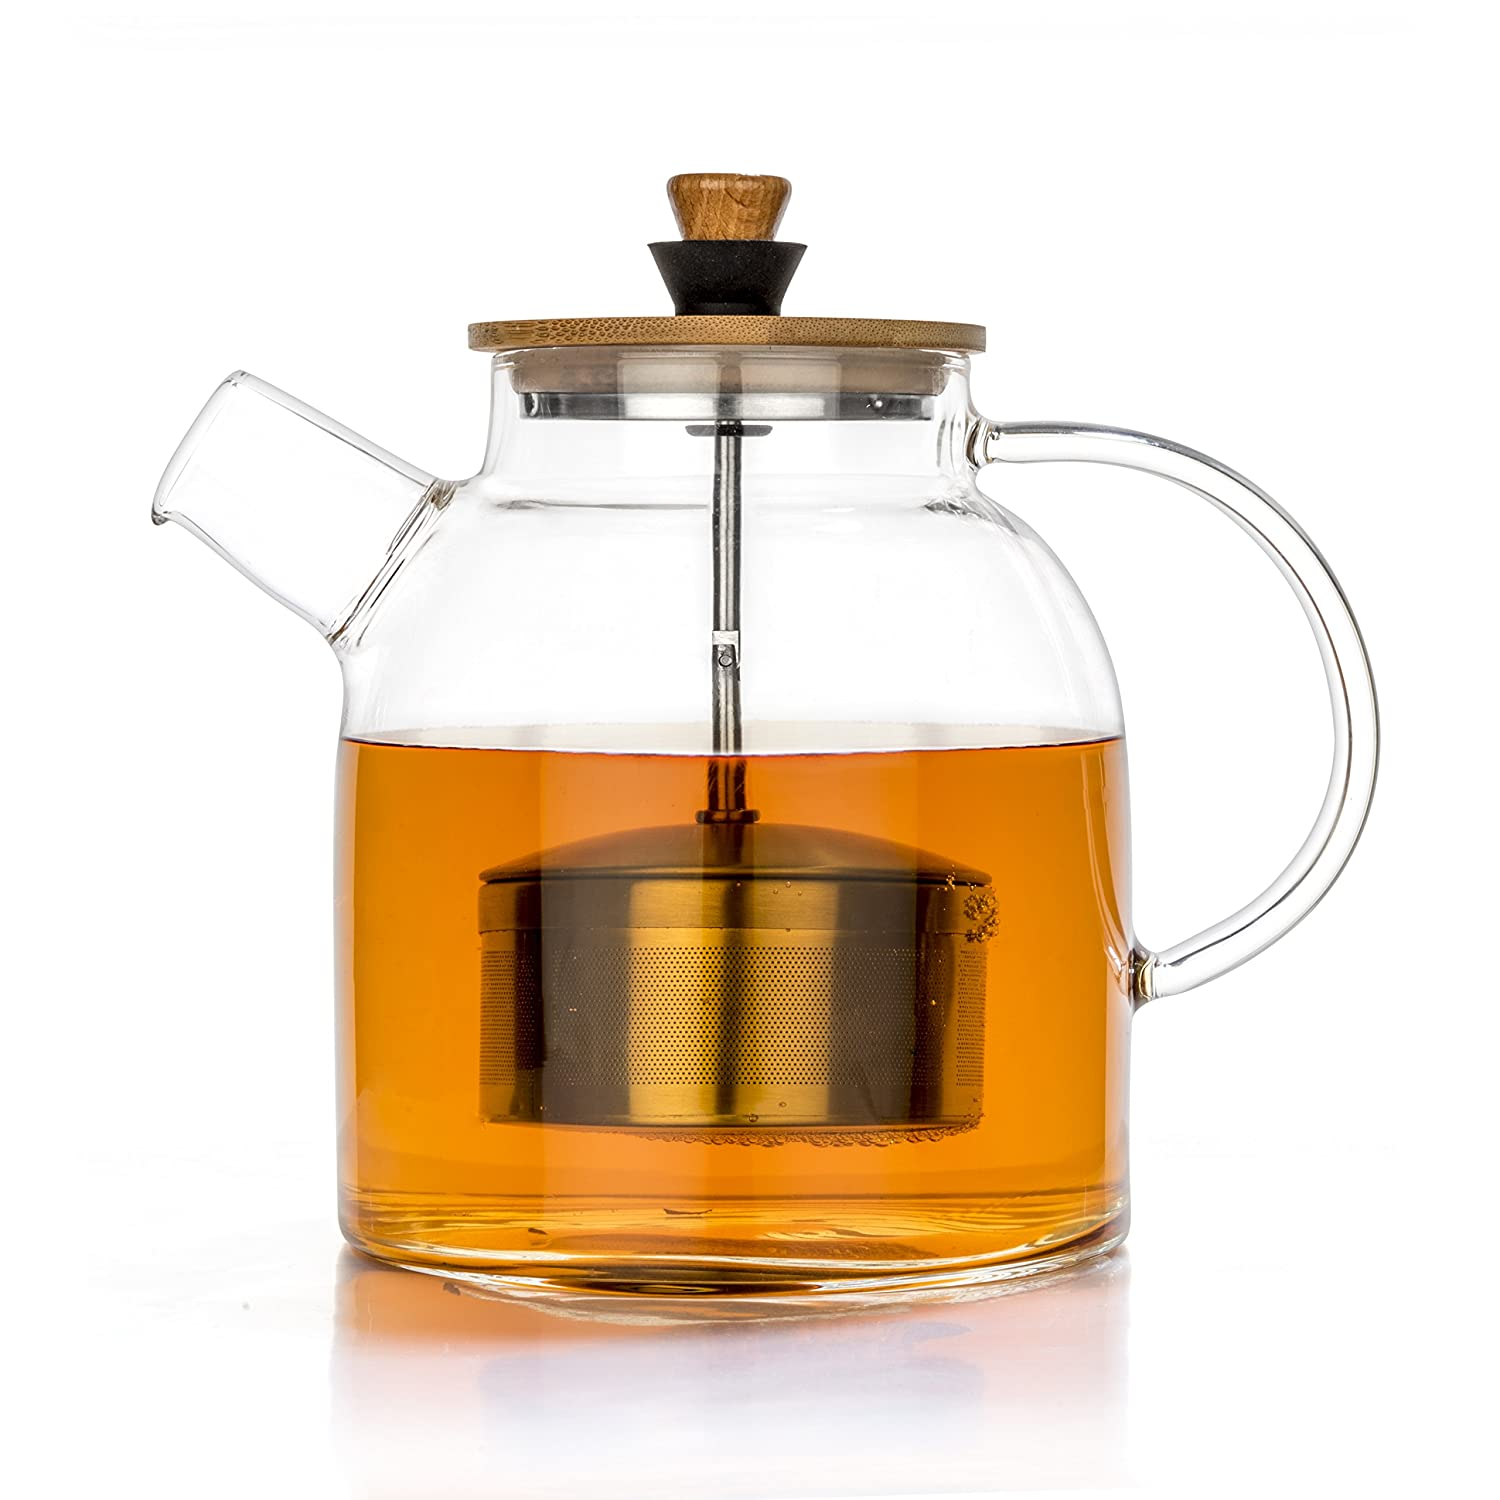 Tealyra - Glass Kettle 1400ml - Stove-TOP Safe - Heat Resistant Borosilicate - Pitcher - Carafe - Teapot with Stainless Steel Infuser - No-Dripping - Tea Juice Water - Hot and Iced - 47-Ounce KRP-038A